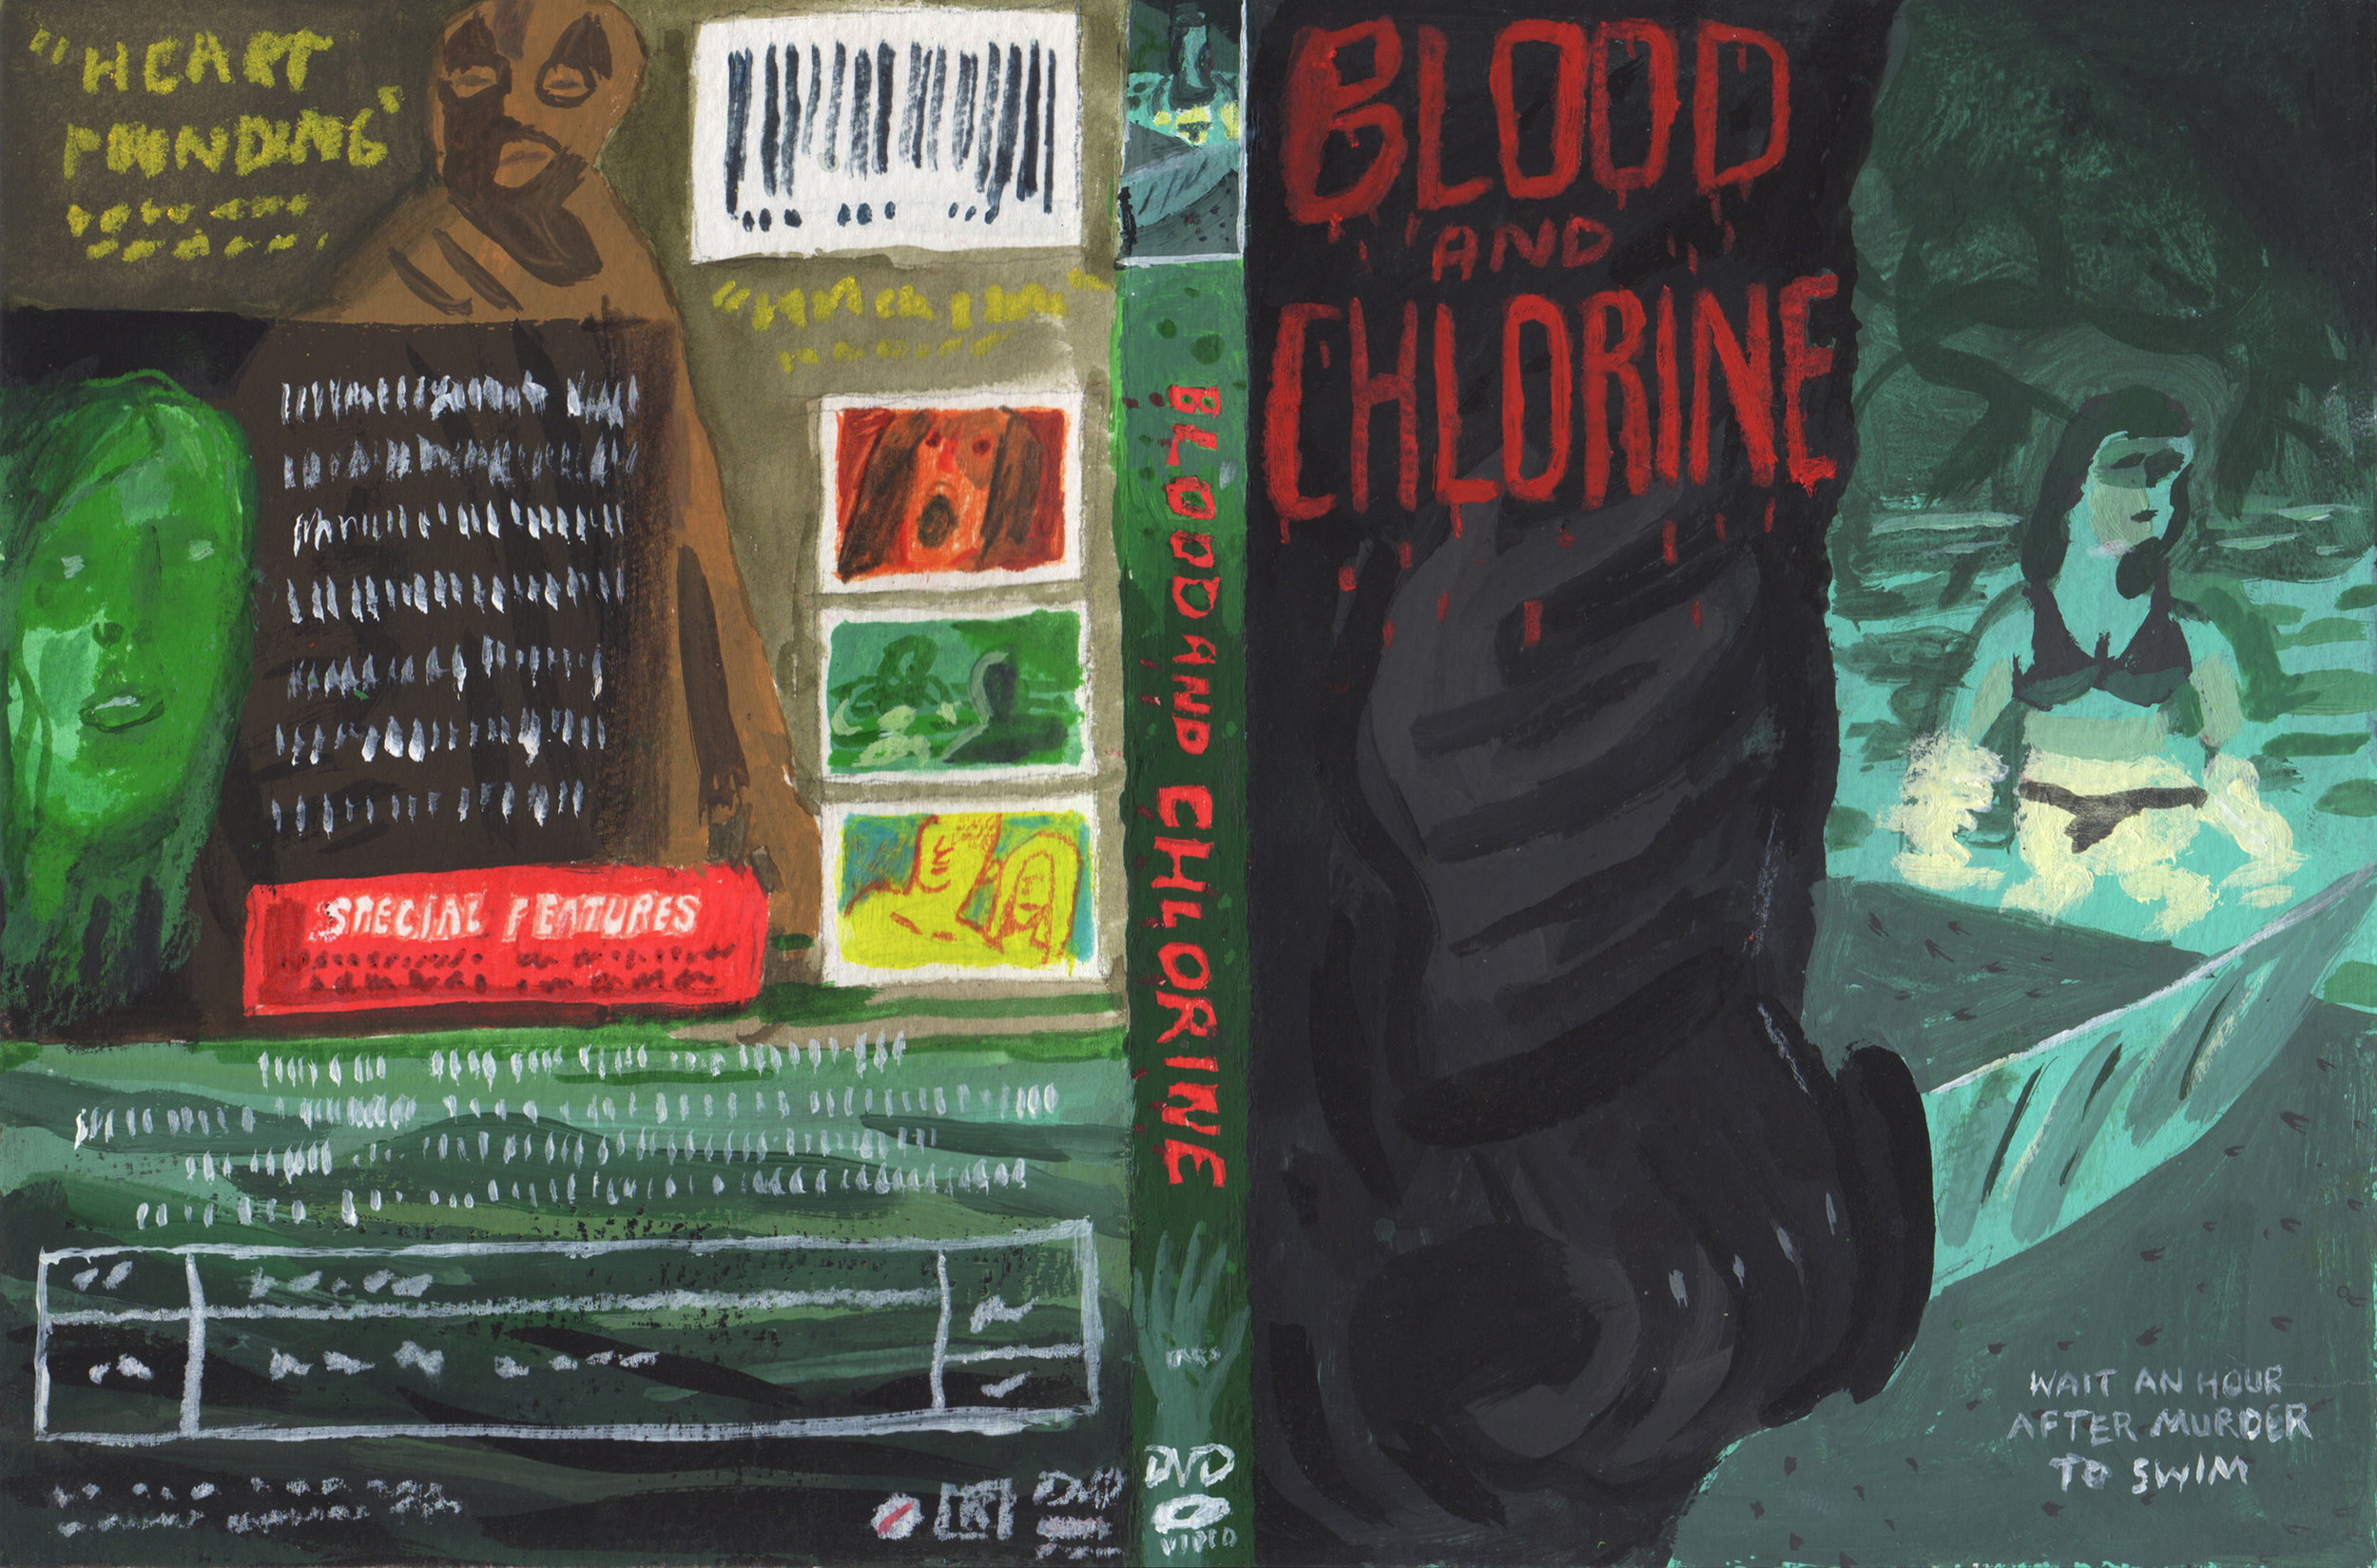 Blood and Chlorine